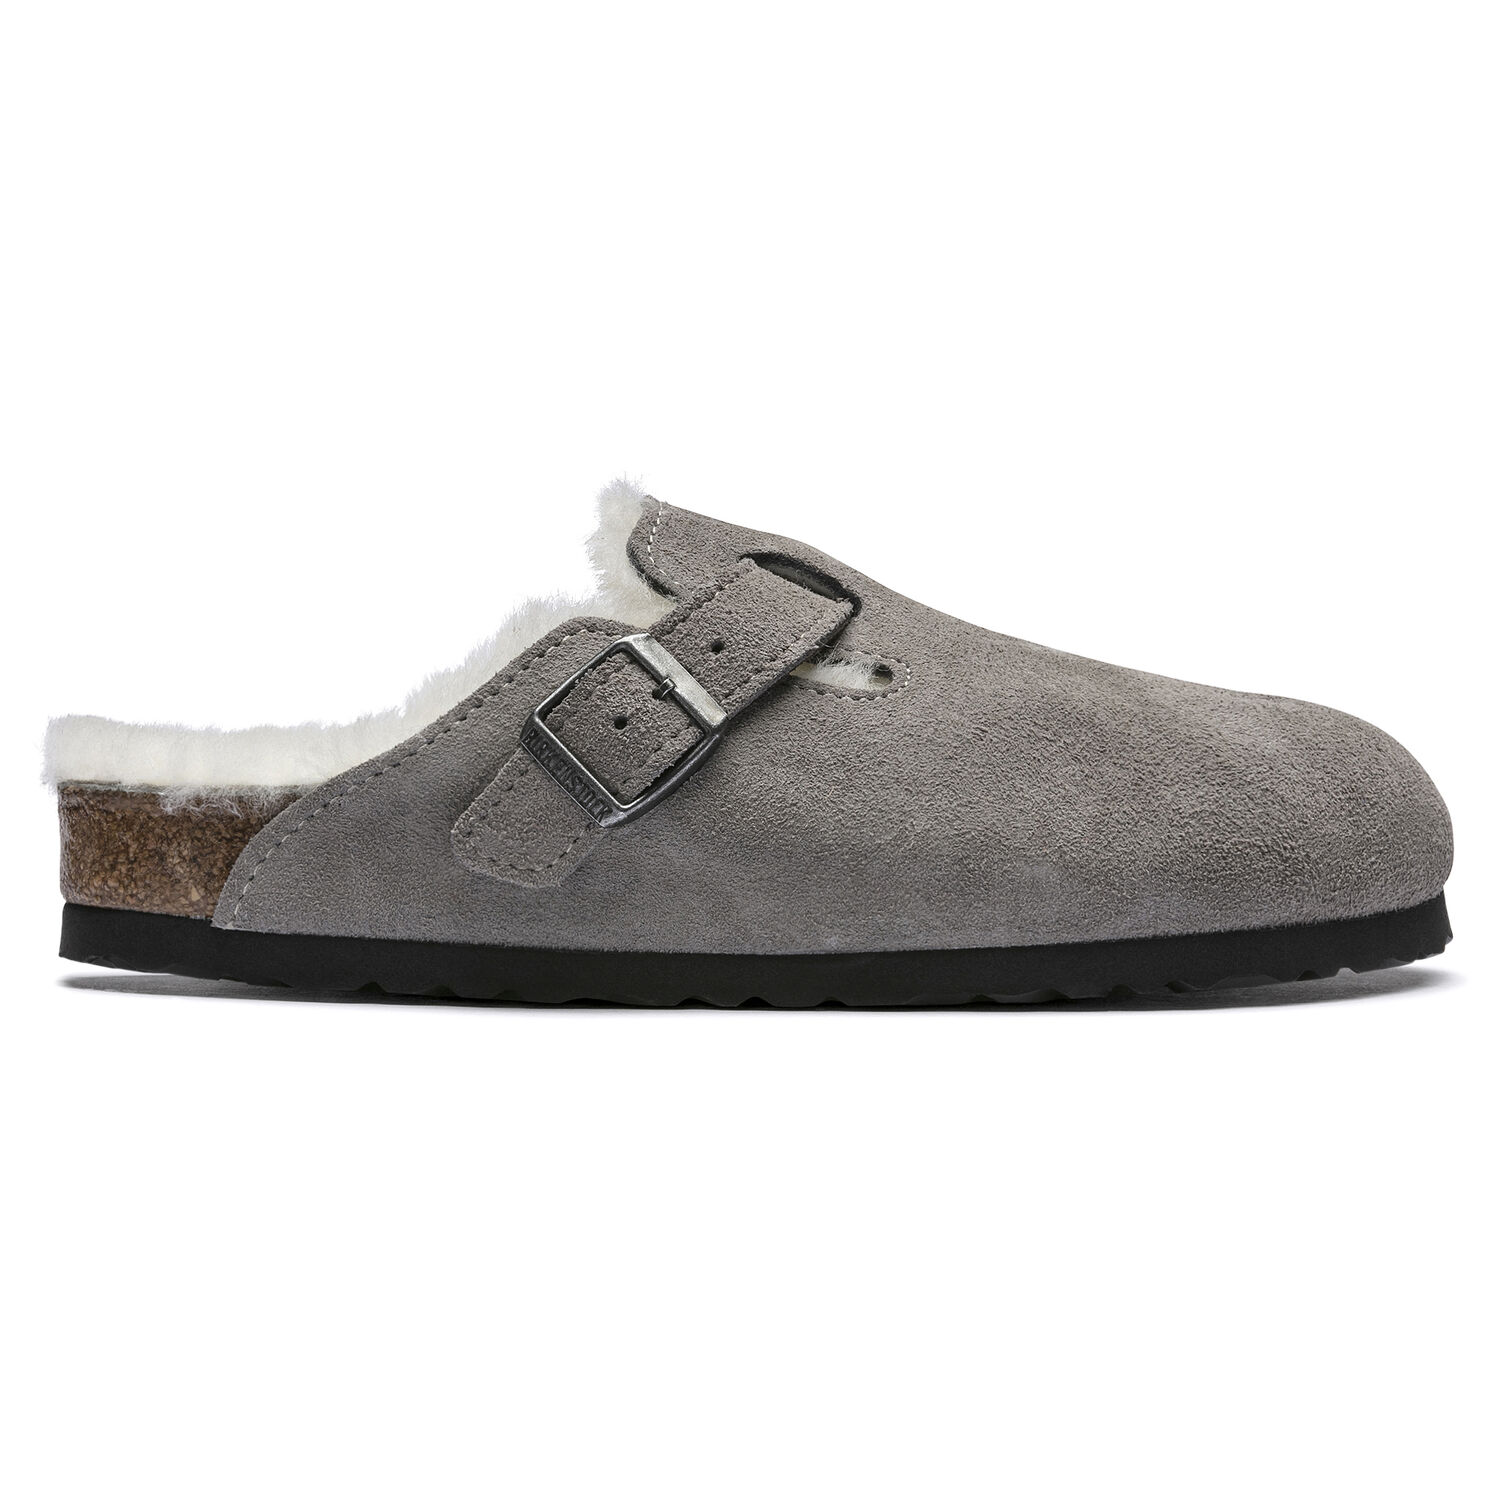 Boston Shearling Suede Leather